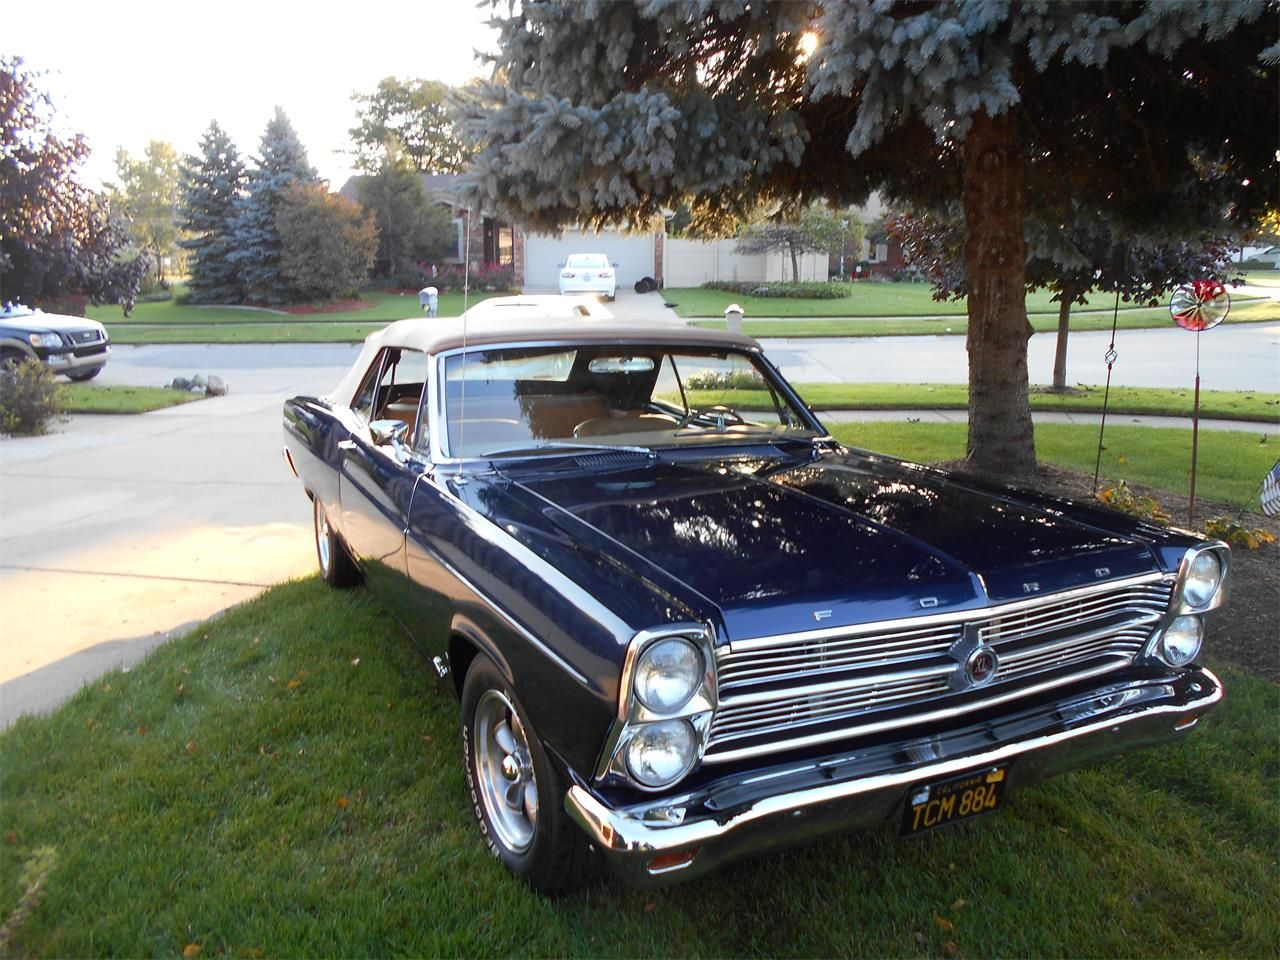 1966 Ford Fairlane 500 Xl Fairlane Ford Fairlane Fairlane 500